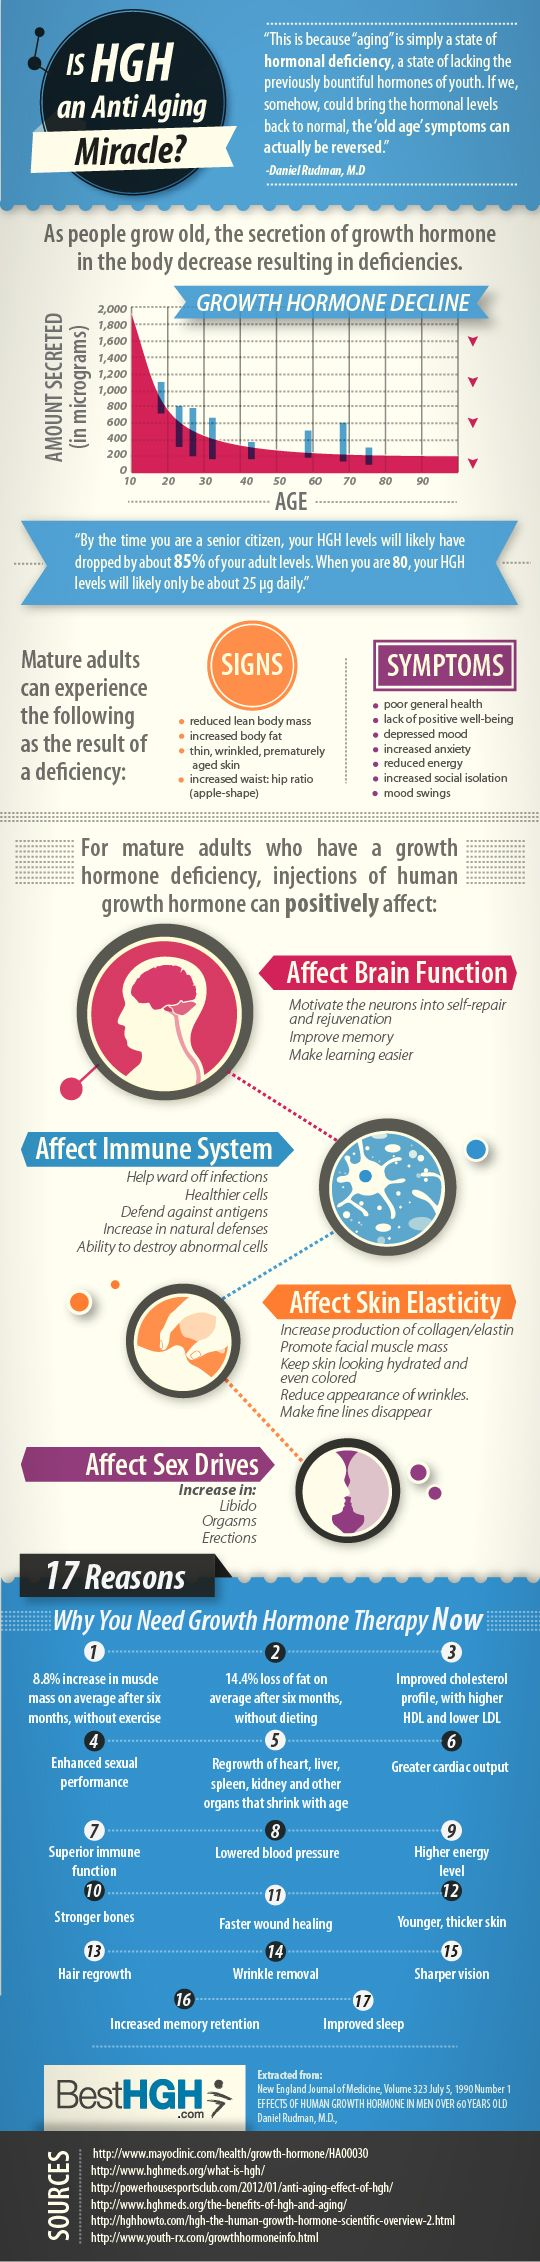 Is HGH an Anti Aging Miracle? [Infographic]